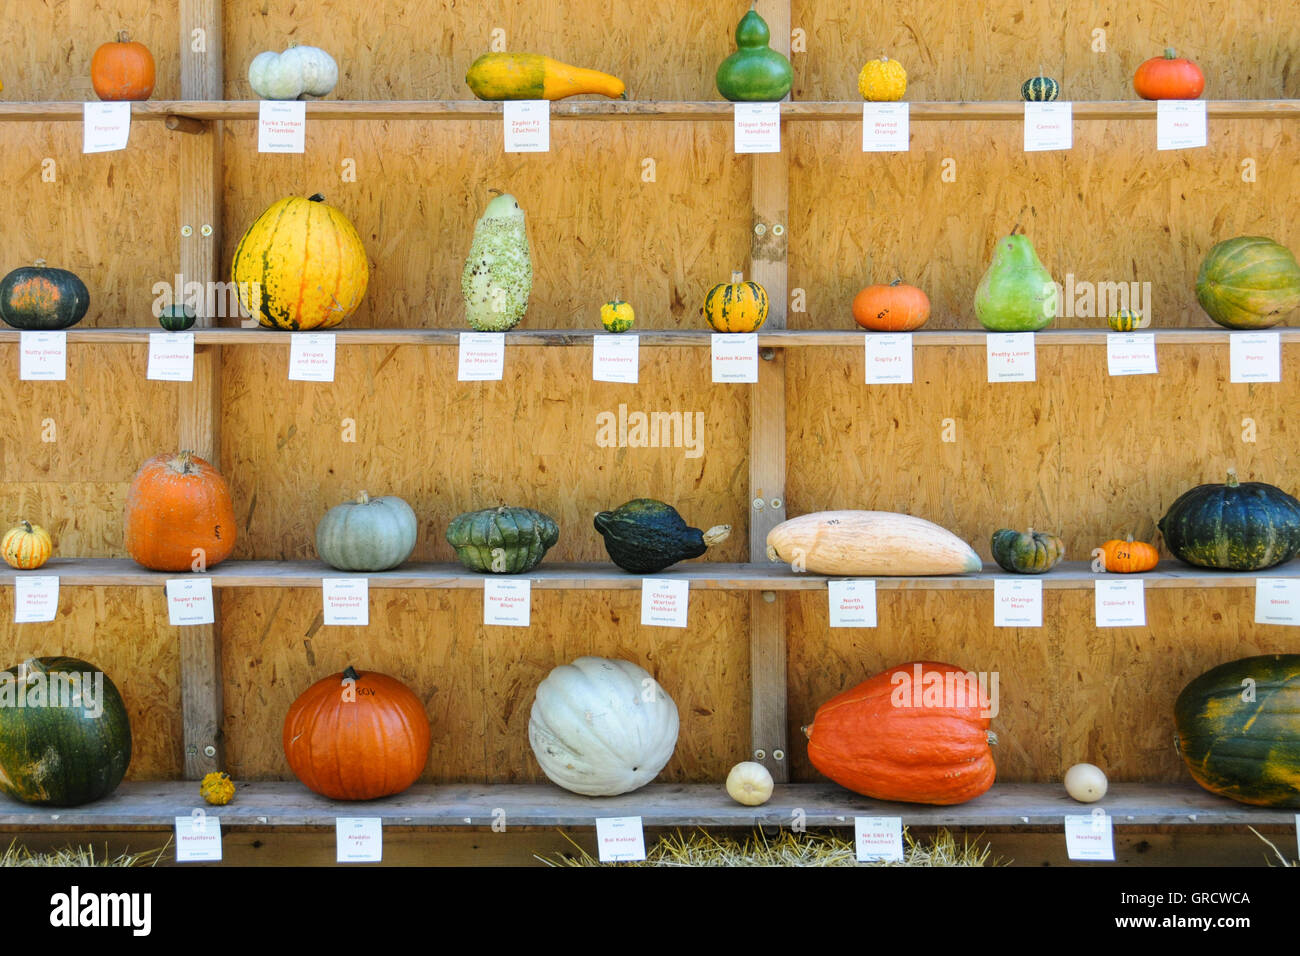 Several Different Colored Pumpkins Are Shown On A Wooden Shelf - Stock Image